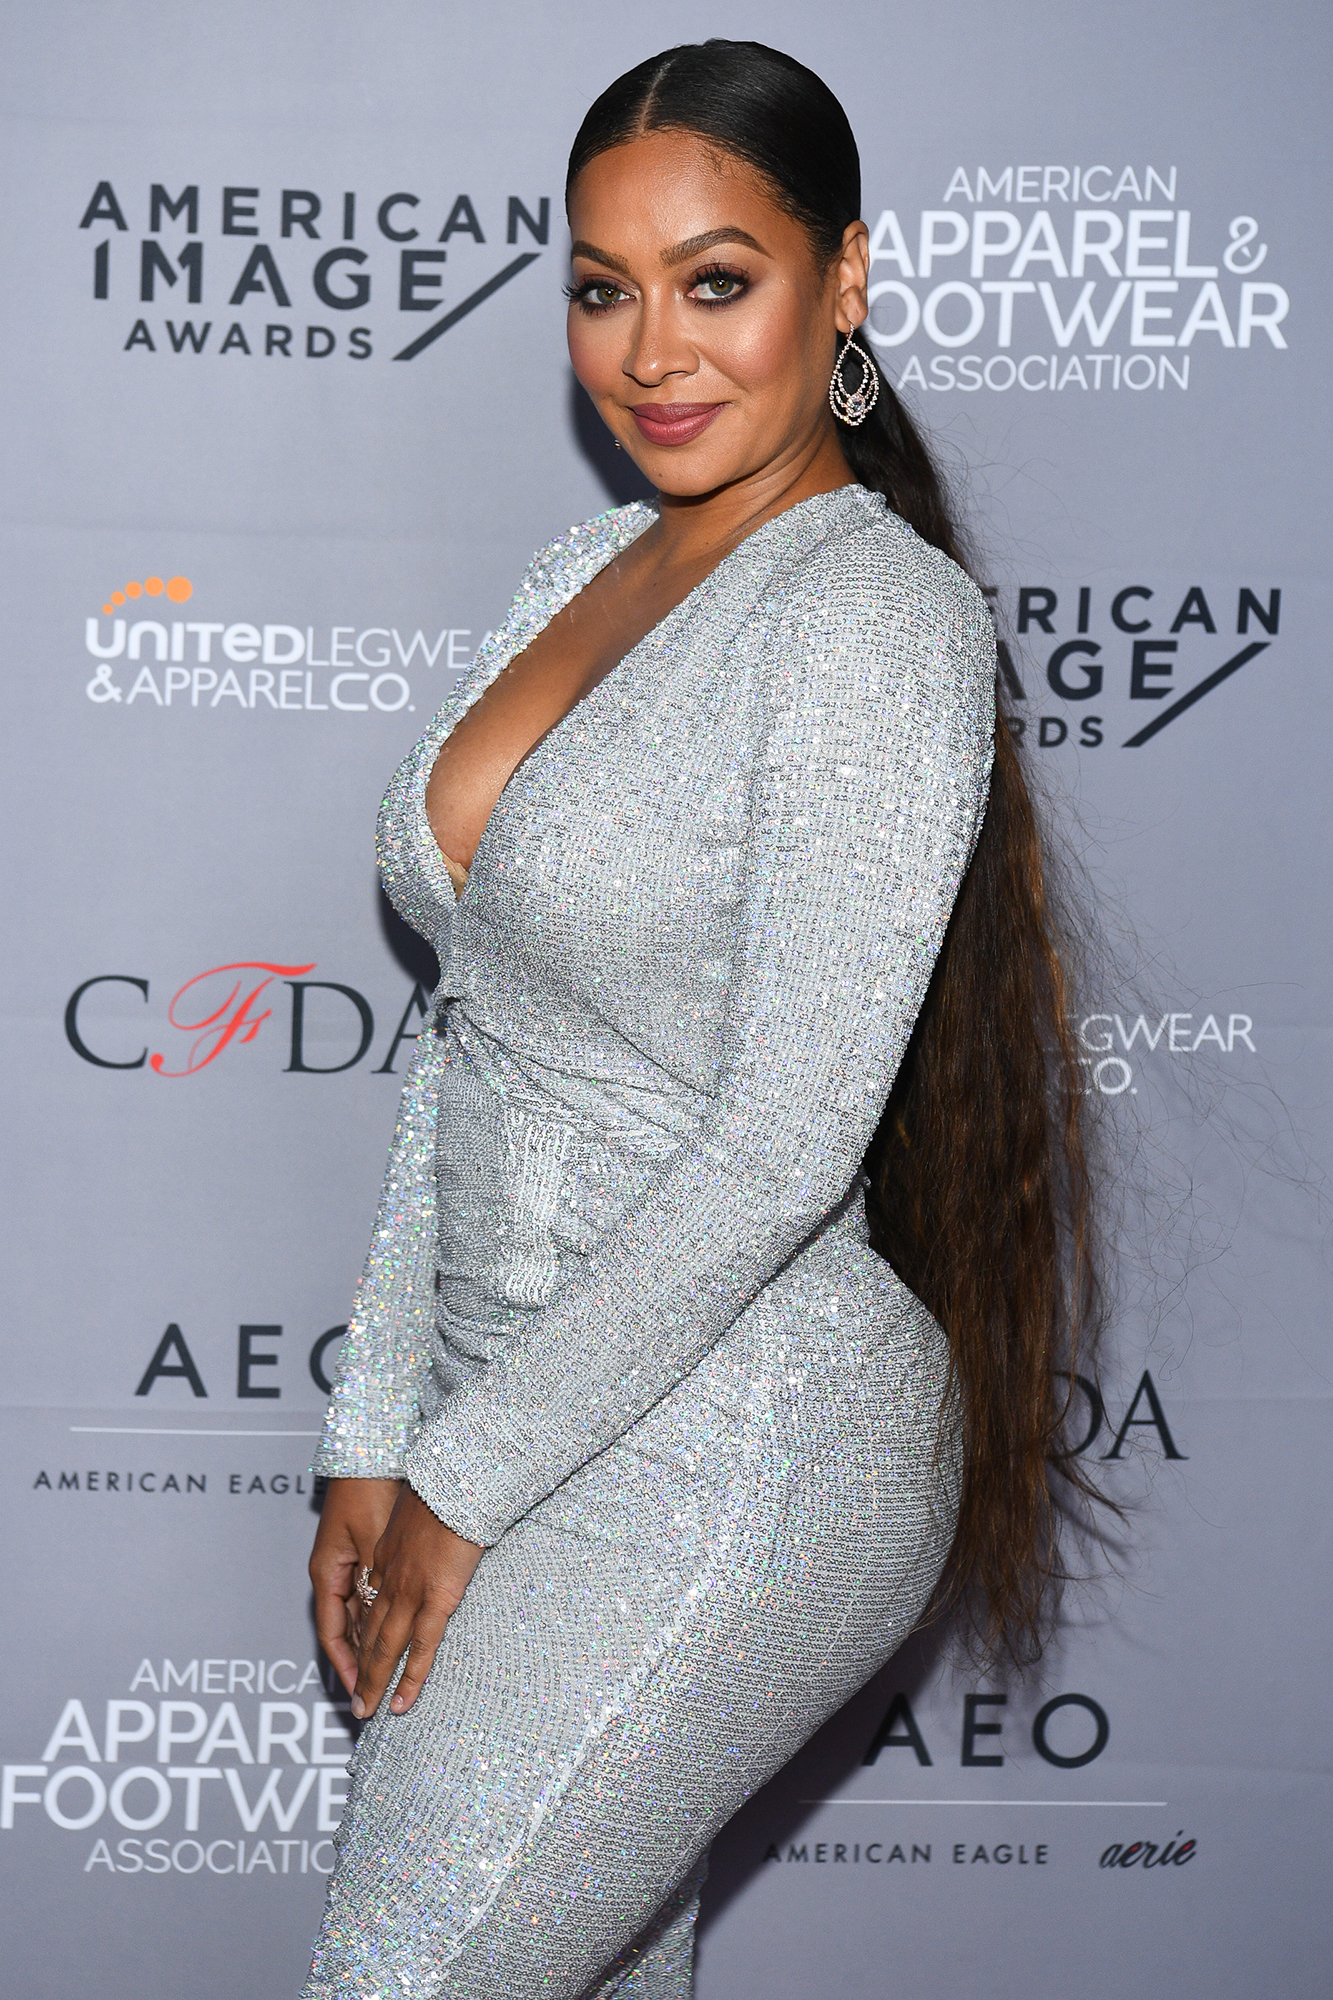 LaLa Anthony and Carmelo Anthony Do Not Not Have Plans for Baby No. 2 - La La Anthony attends the AAFA American Image Awards 2019 at The Plaza on April 15, 2019 in New York City.